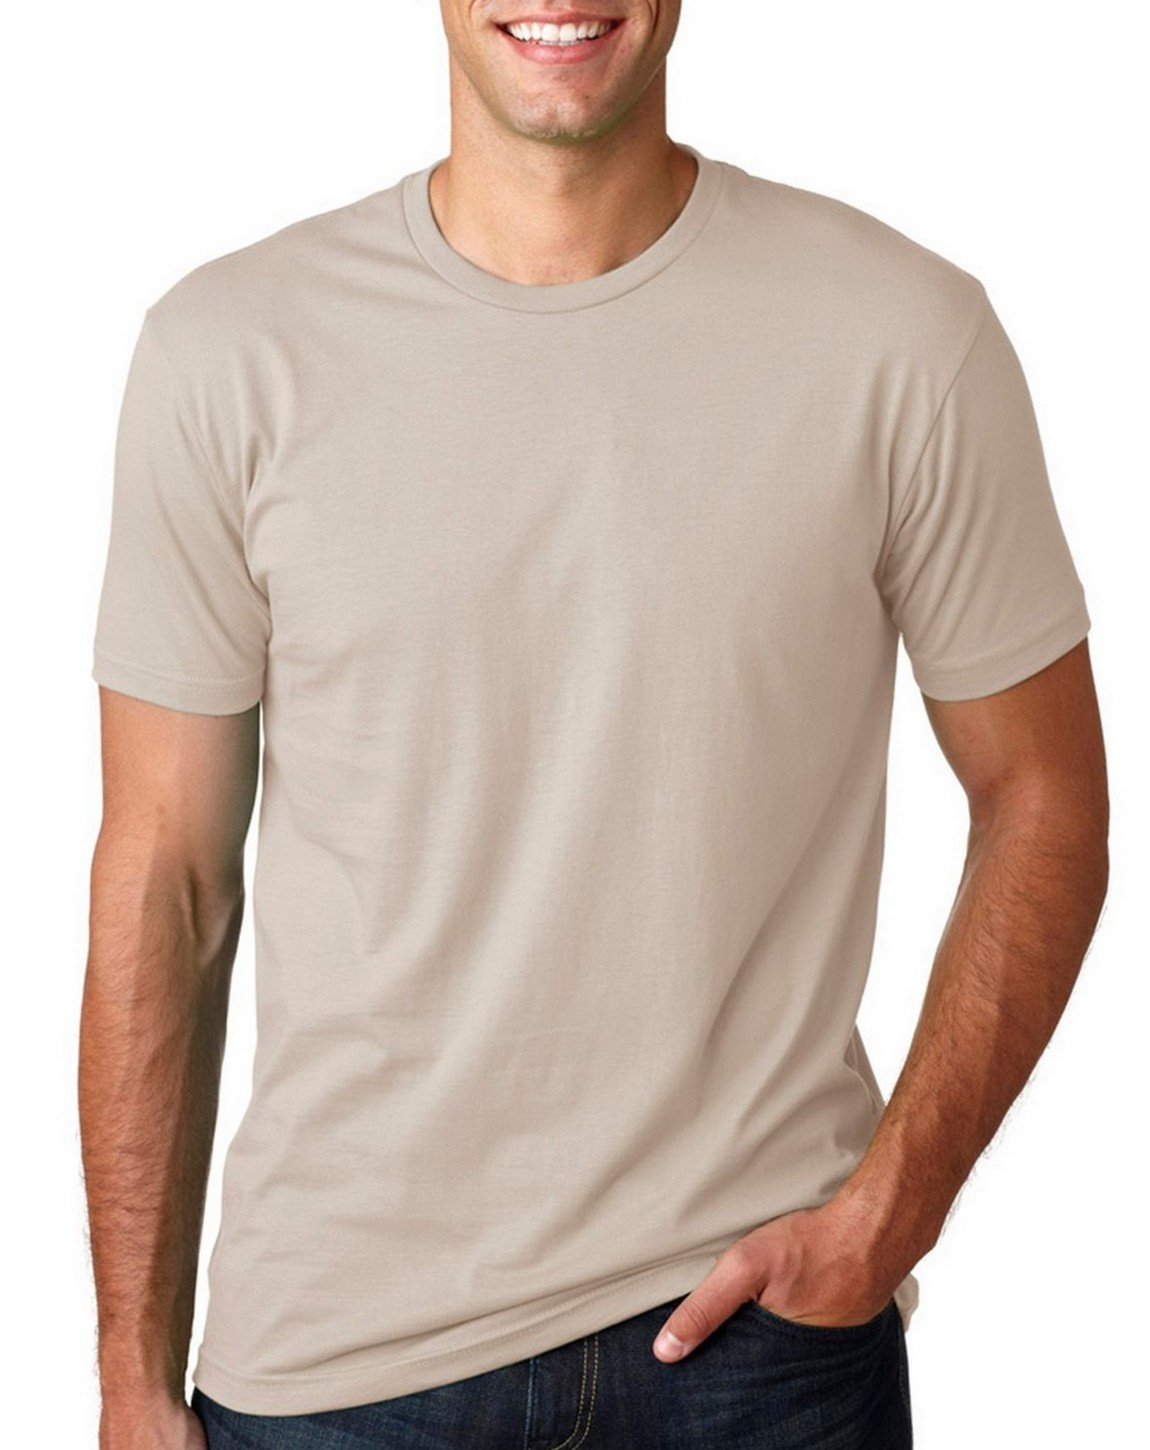 Next Level Mens Premium Fitted Crew Sand Large (Pack of 5) by Next Level